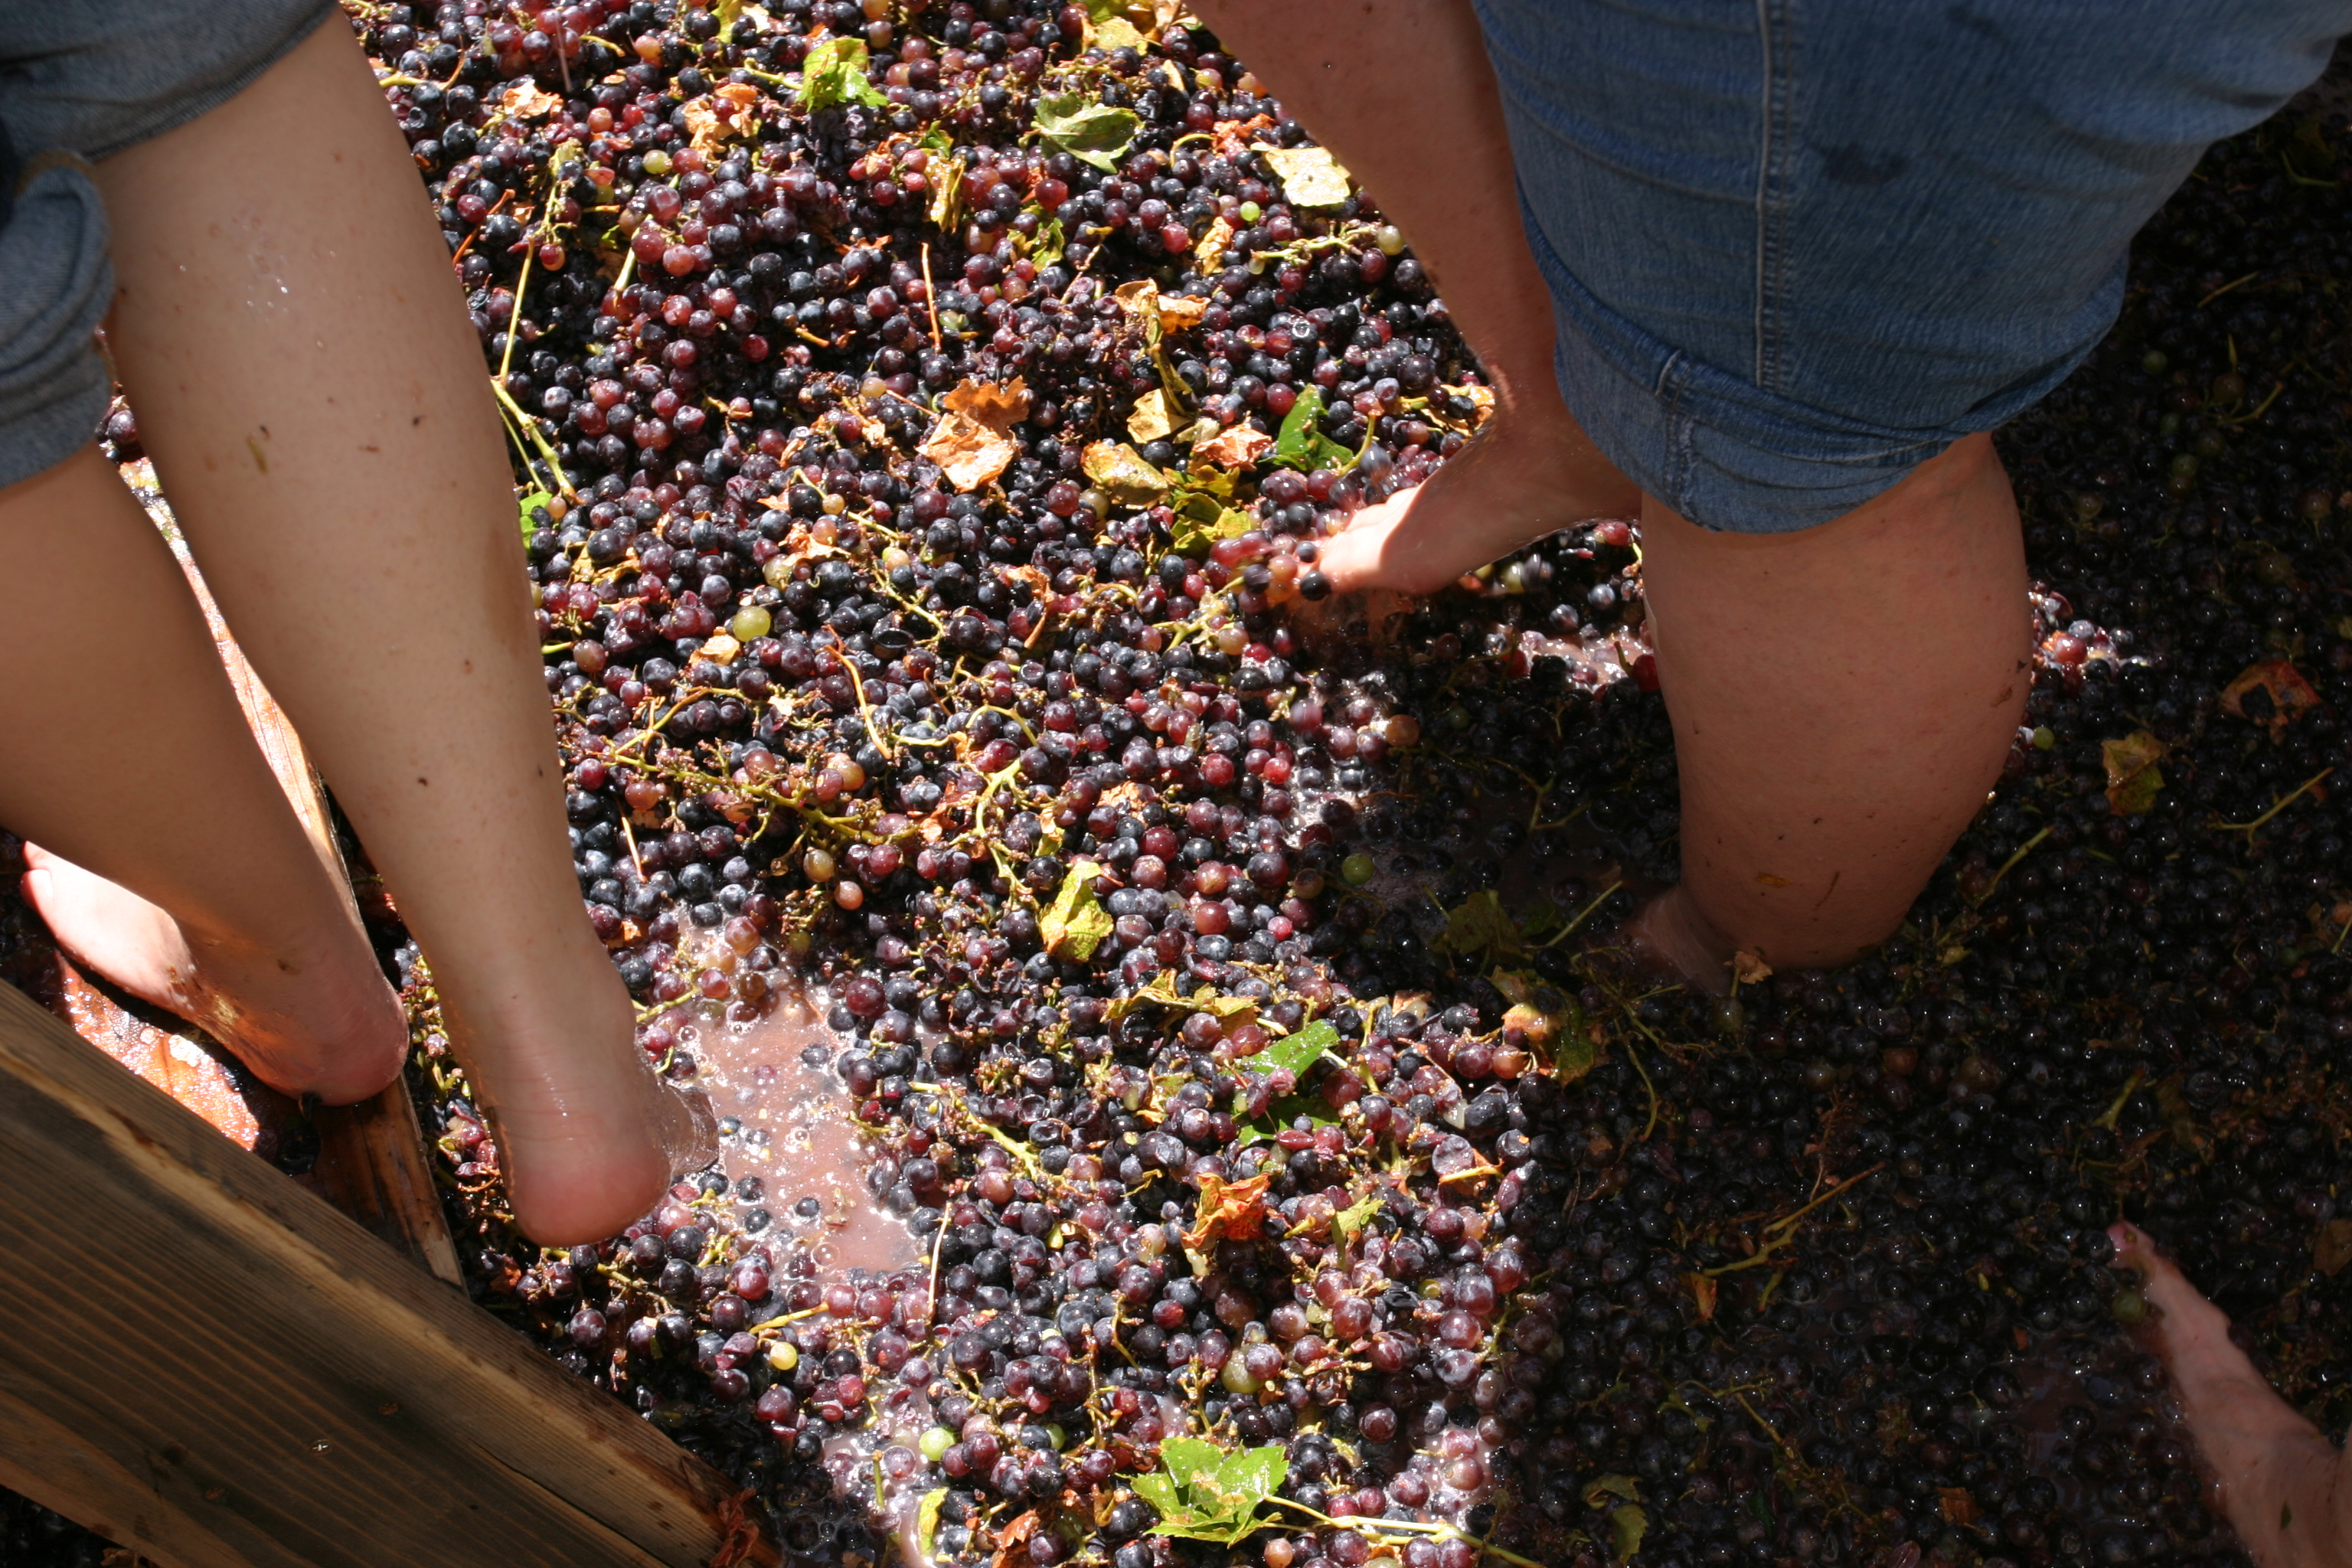 Stomping grapes with their feet